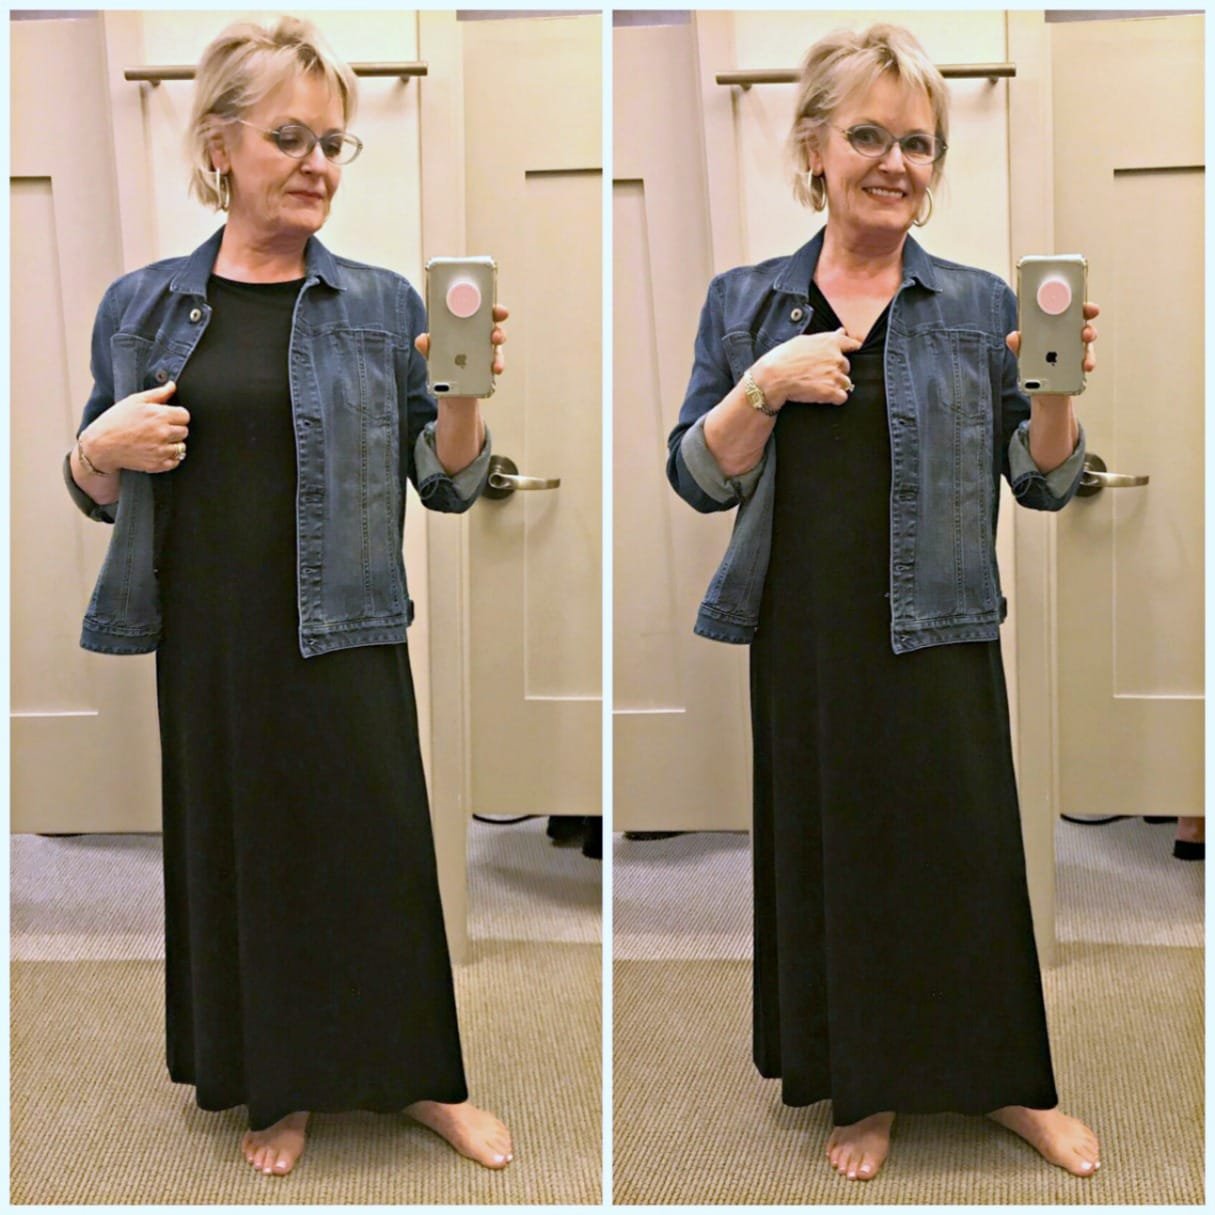 Black maxi dress and denim jacket from J.Jill styled by Jennifer of A Well Styled Life